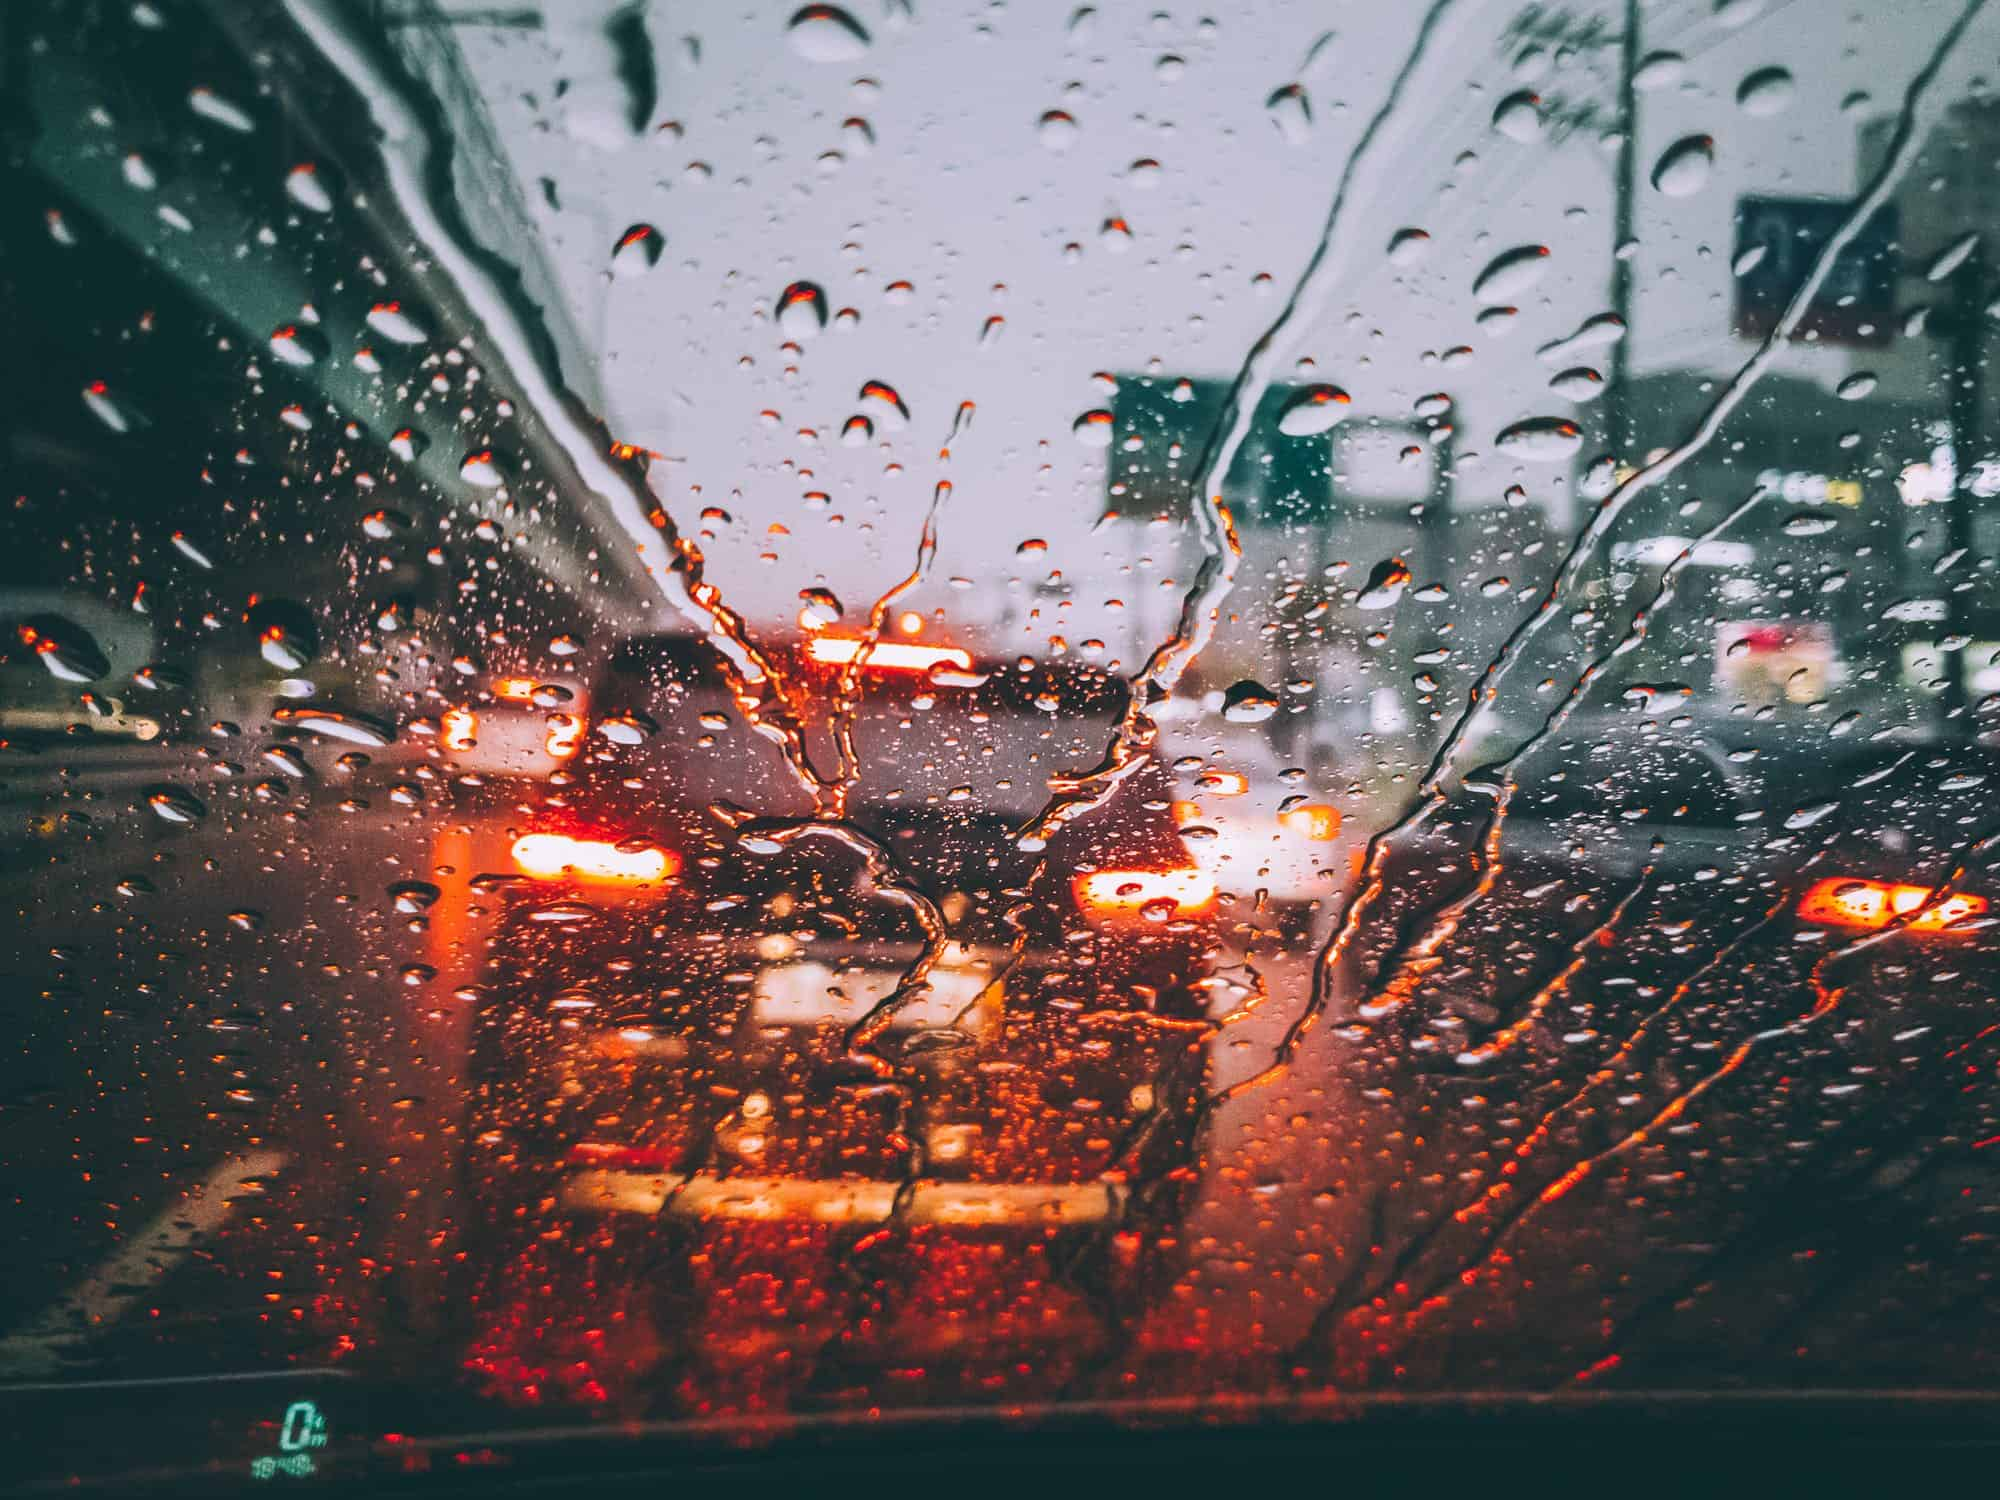 Driving in the rain behind an SUV